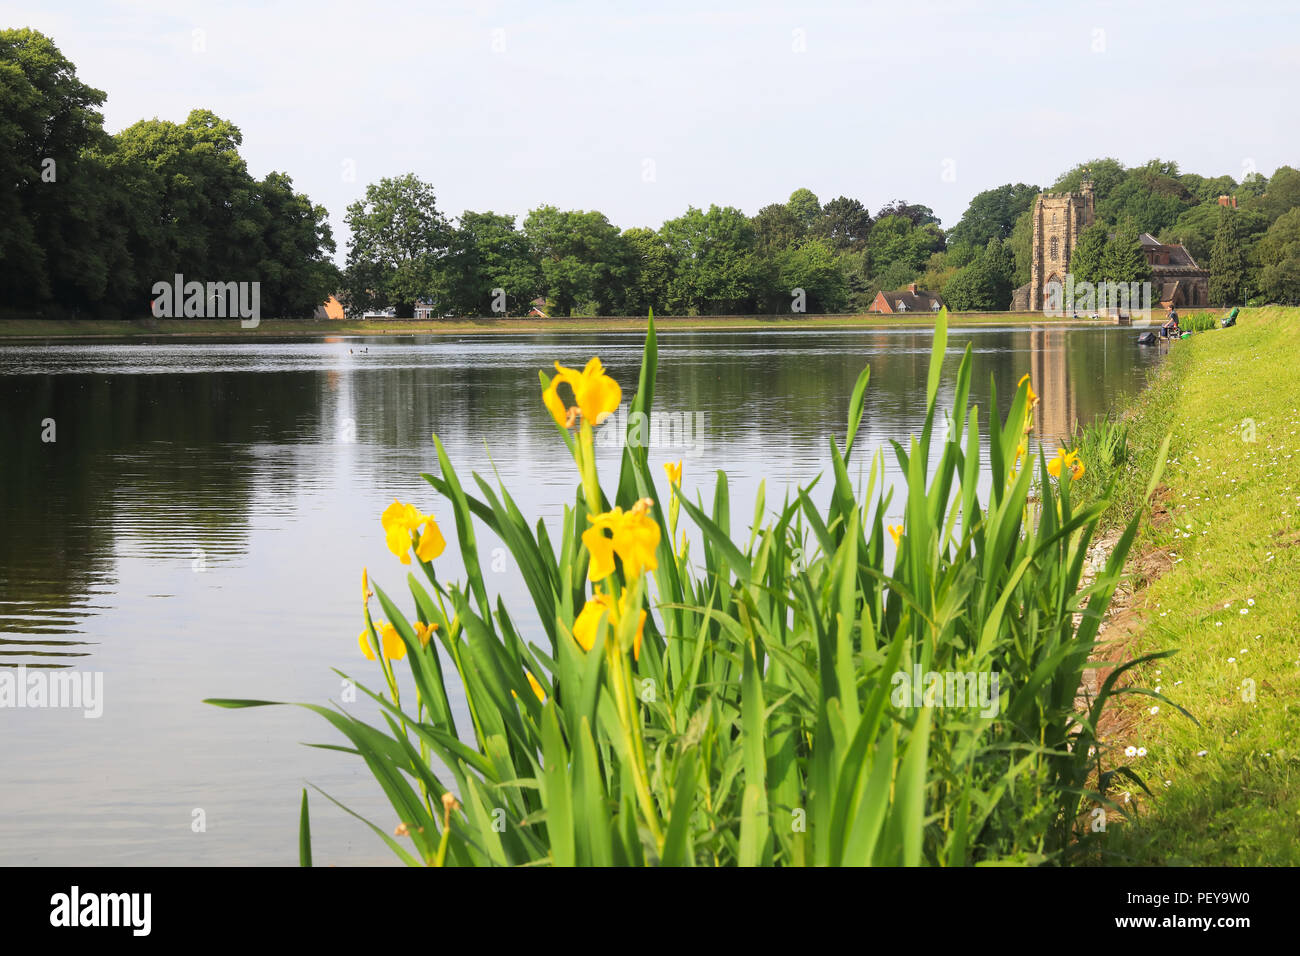 The Parish Church of Saint Chad, on Stowe Pool, in Lichfield, in the heart of Staffordshire, in England, UK - Stock Image